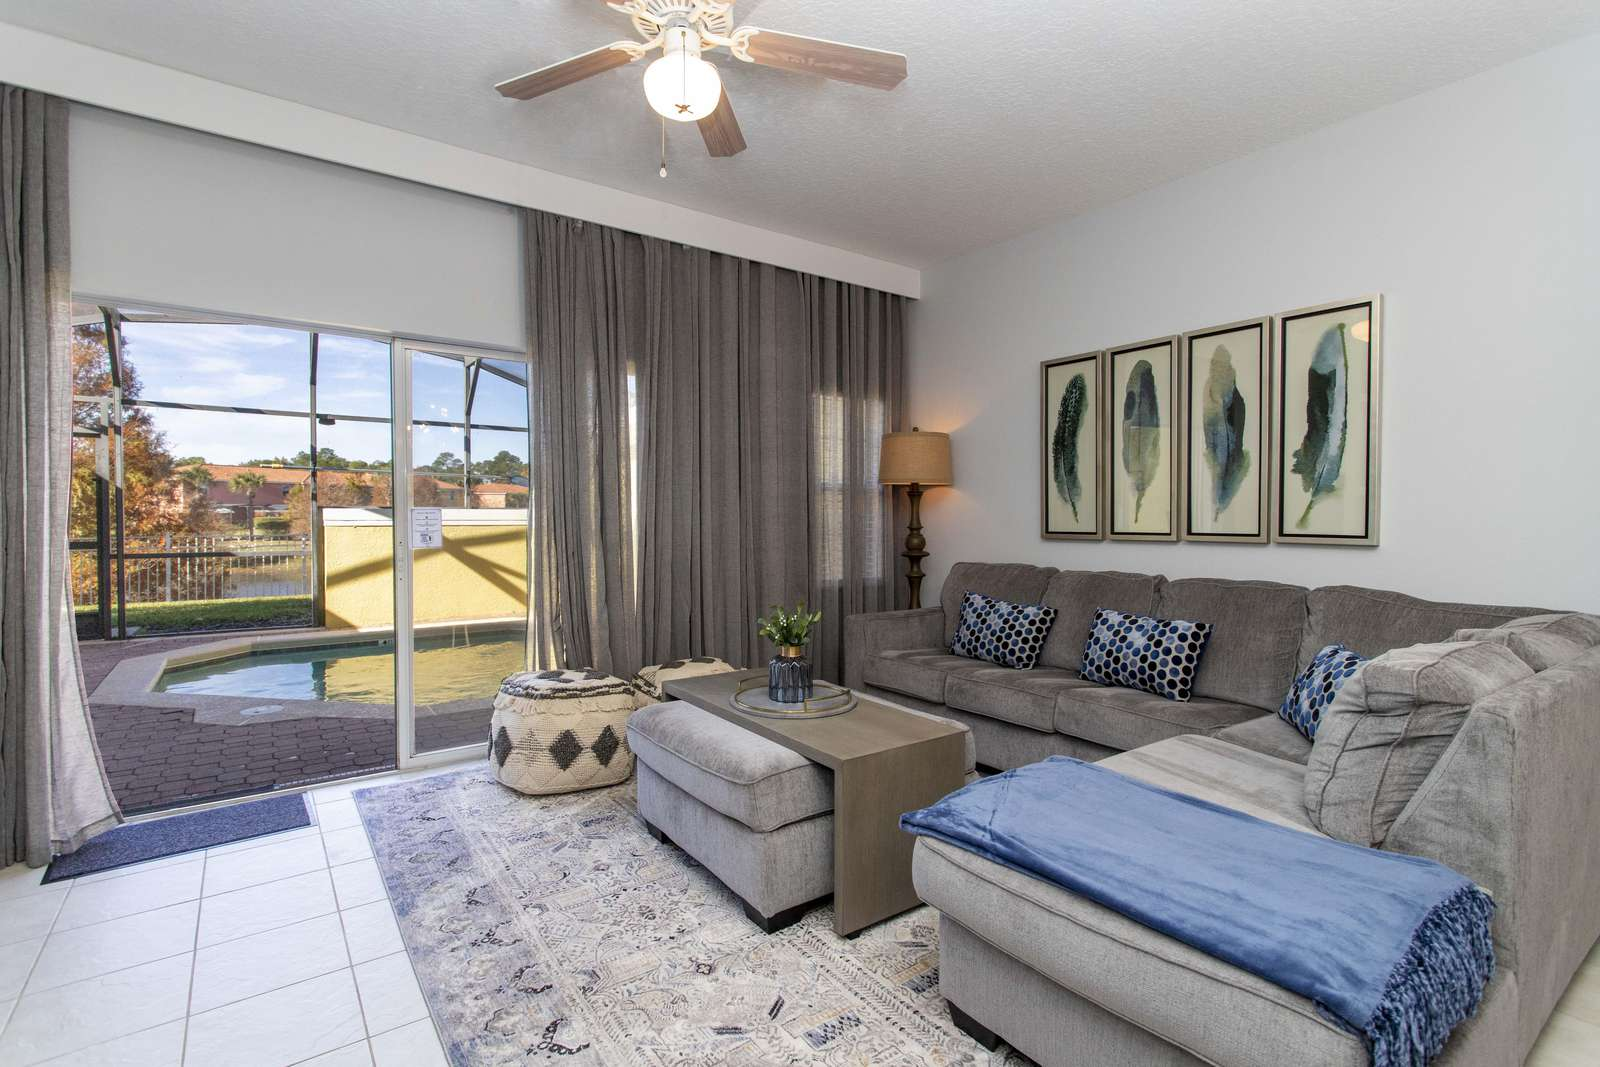 Living Room with Pool & Lake View - property